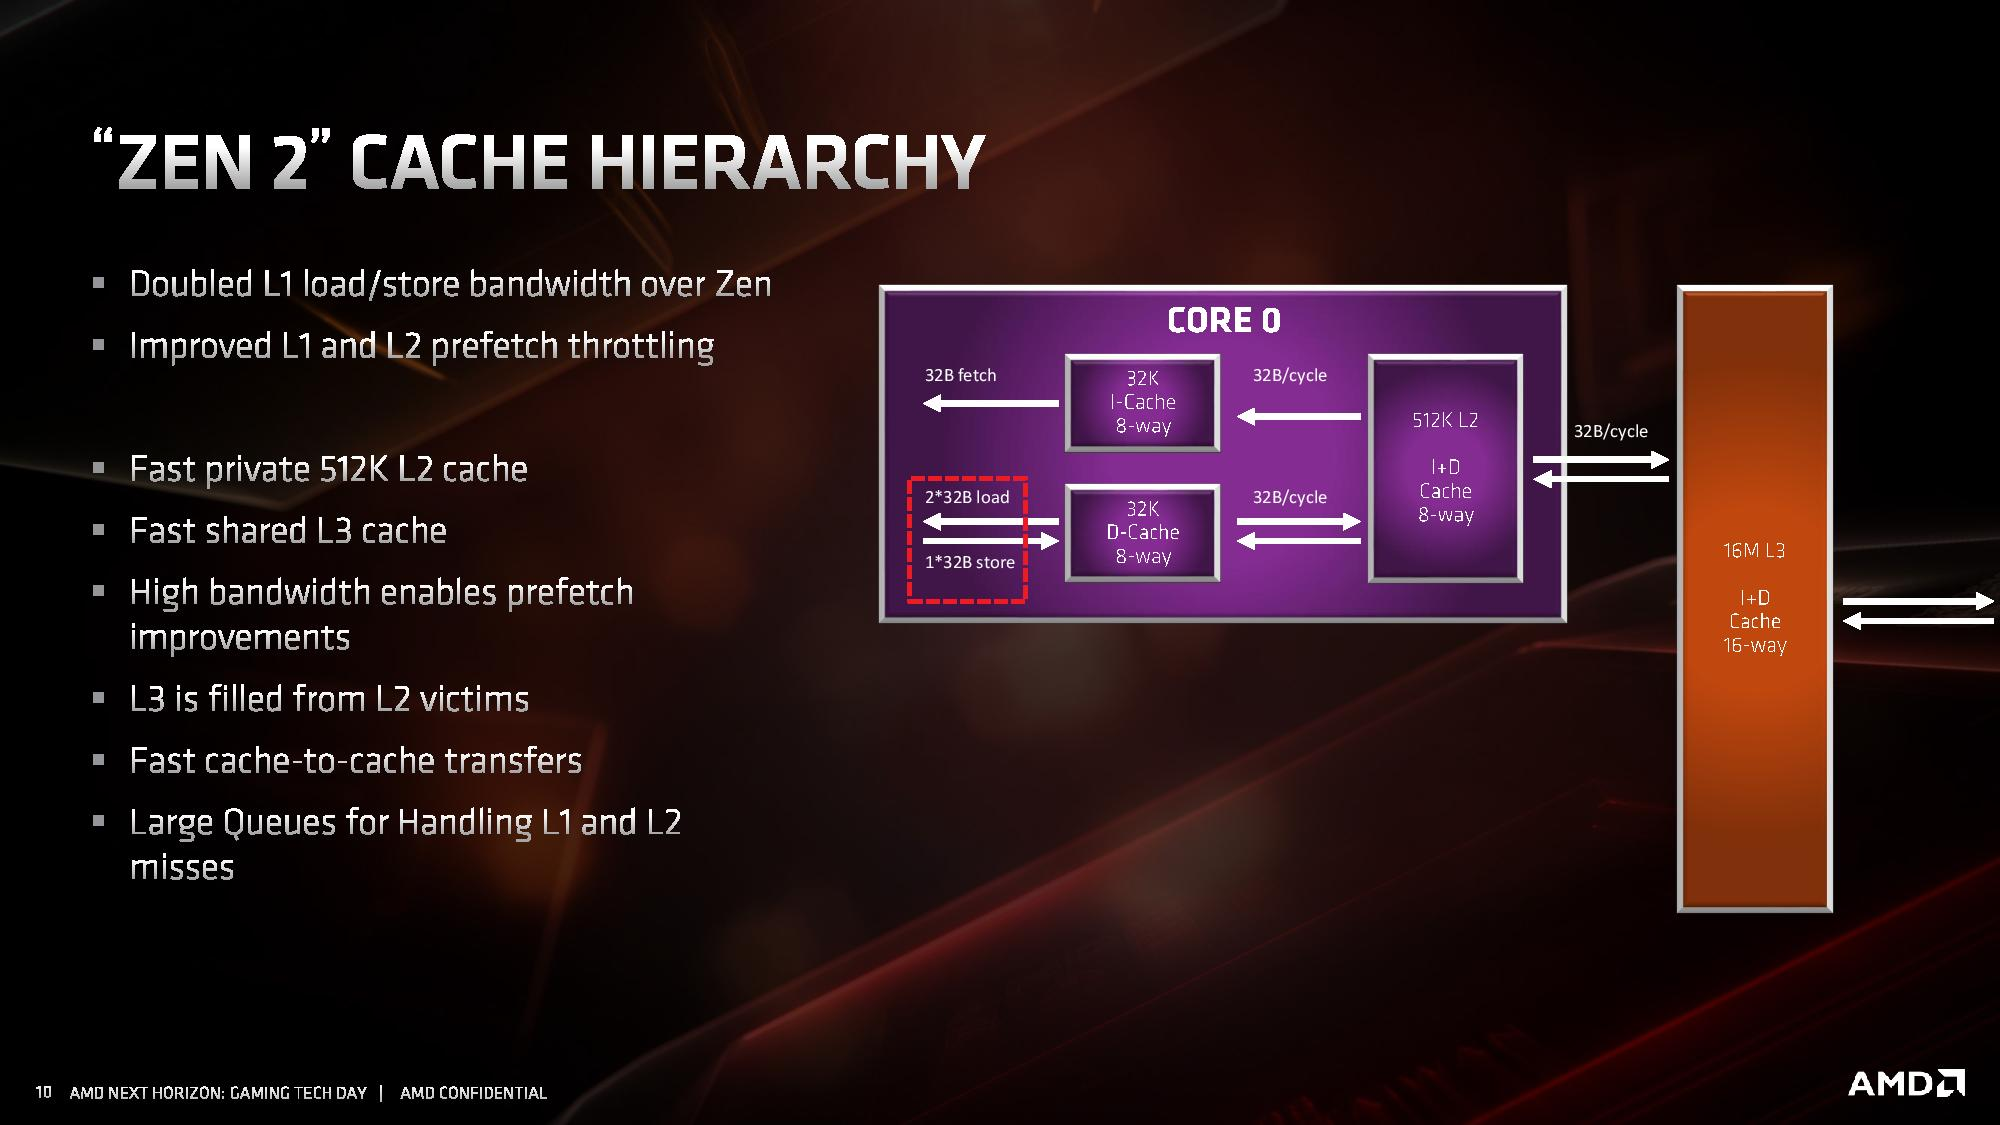 Cache And Infinity Fabric Amd Zen 2 Microarchitecture Analysis Ryzen 3000 And Epyc Rome